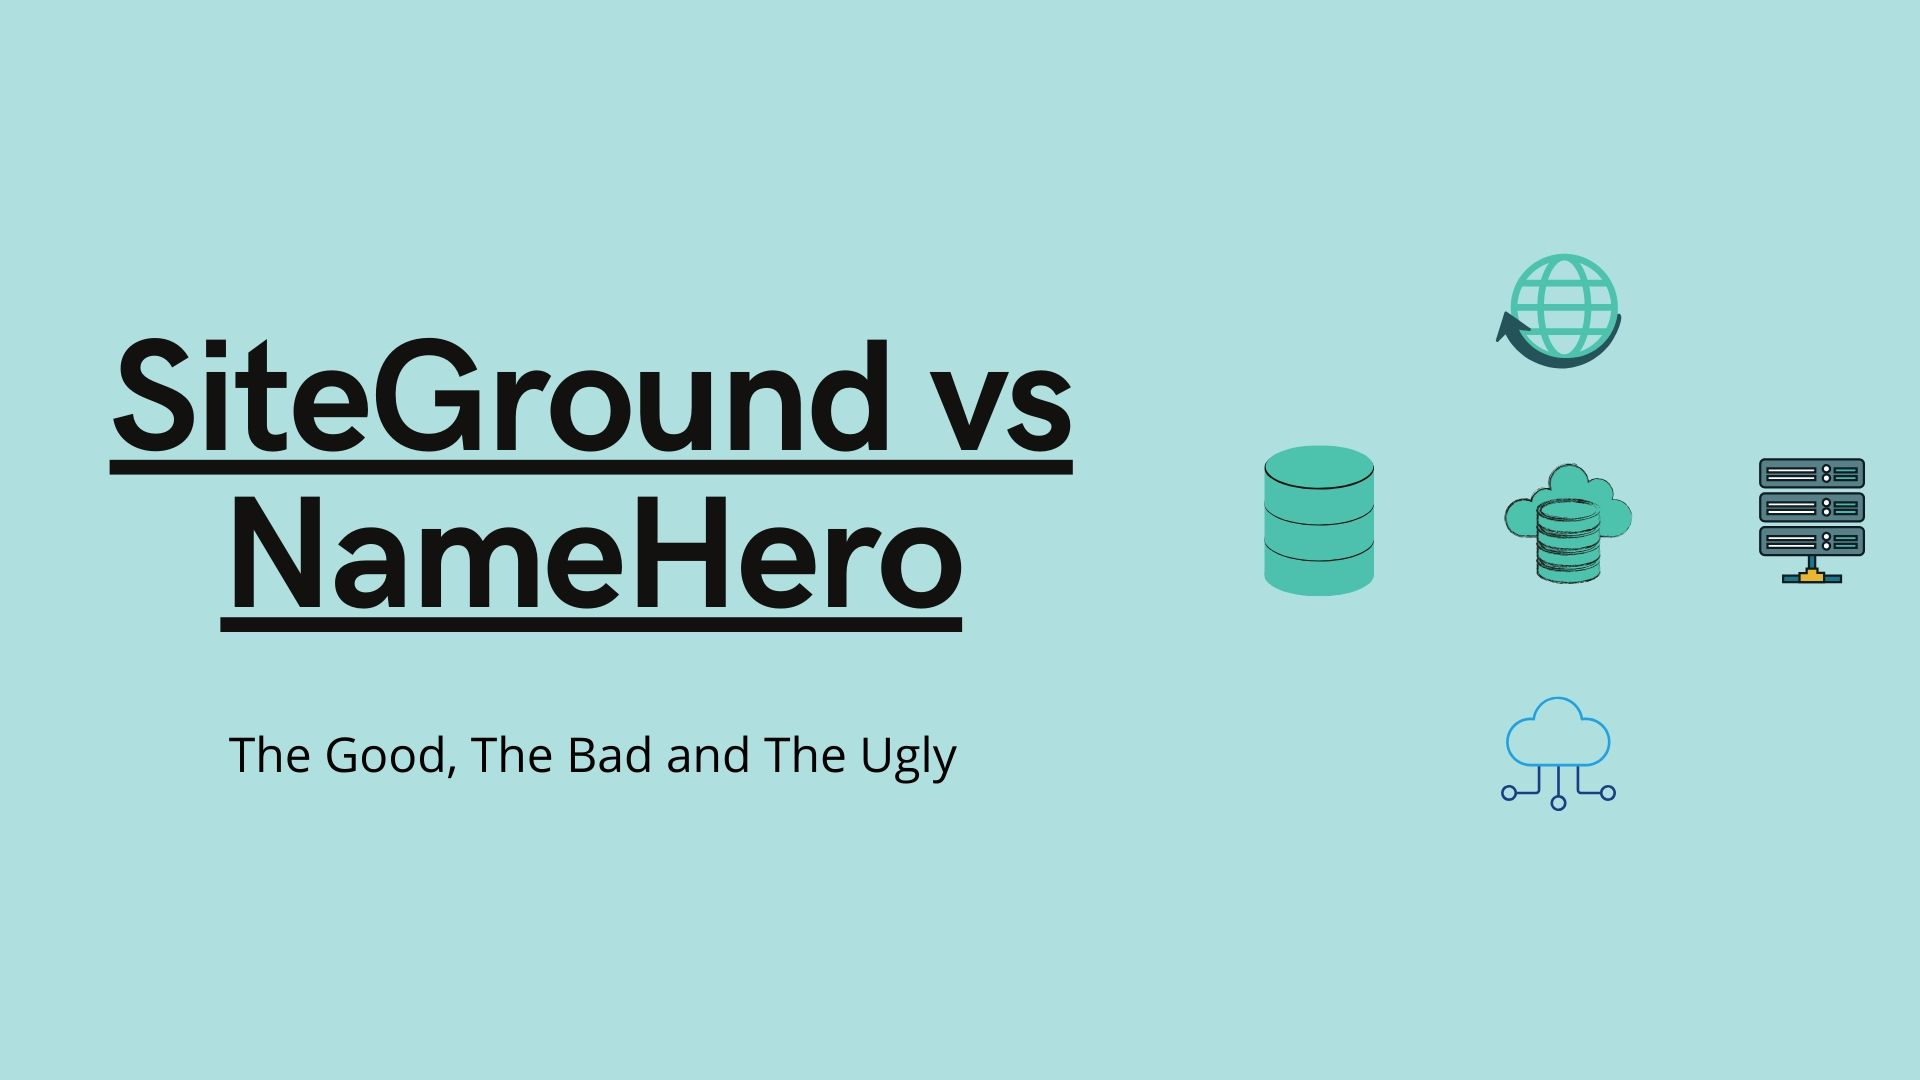 SiteGround vs NameHero